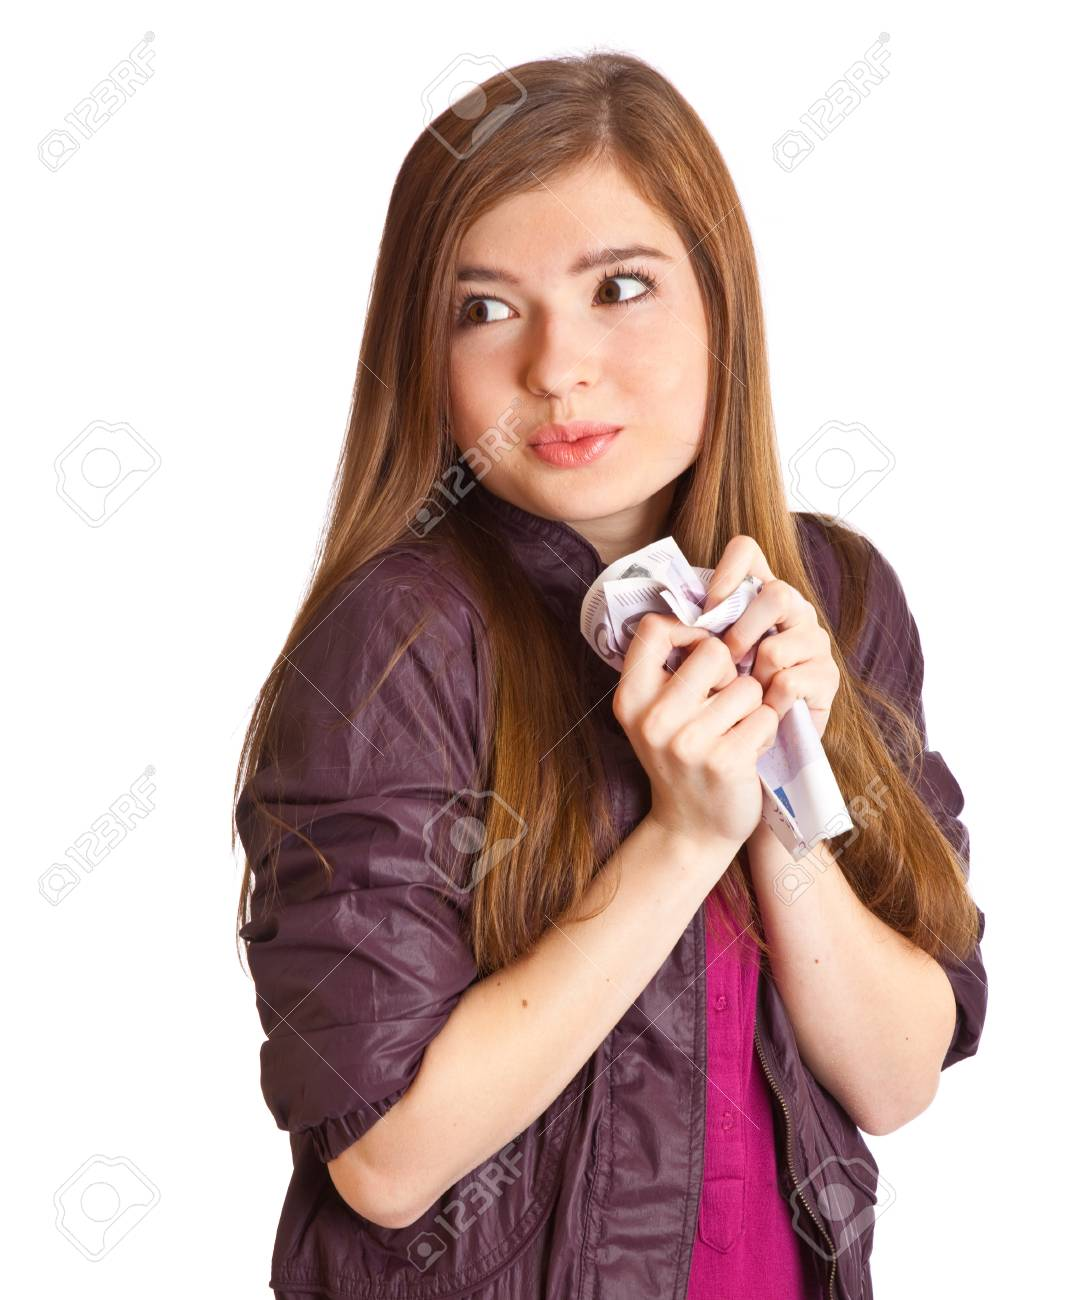 Girl with money in hands. Isolated on white background Stock Photo - 8381424